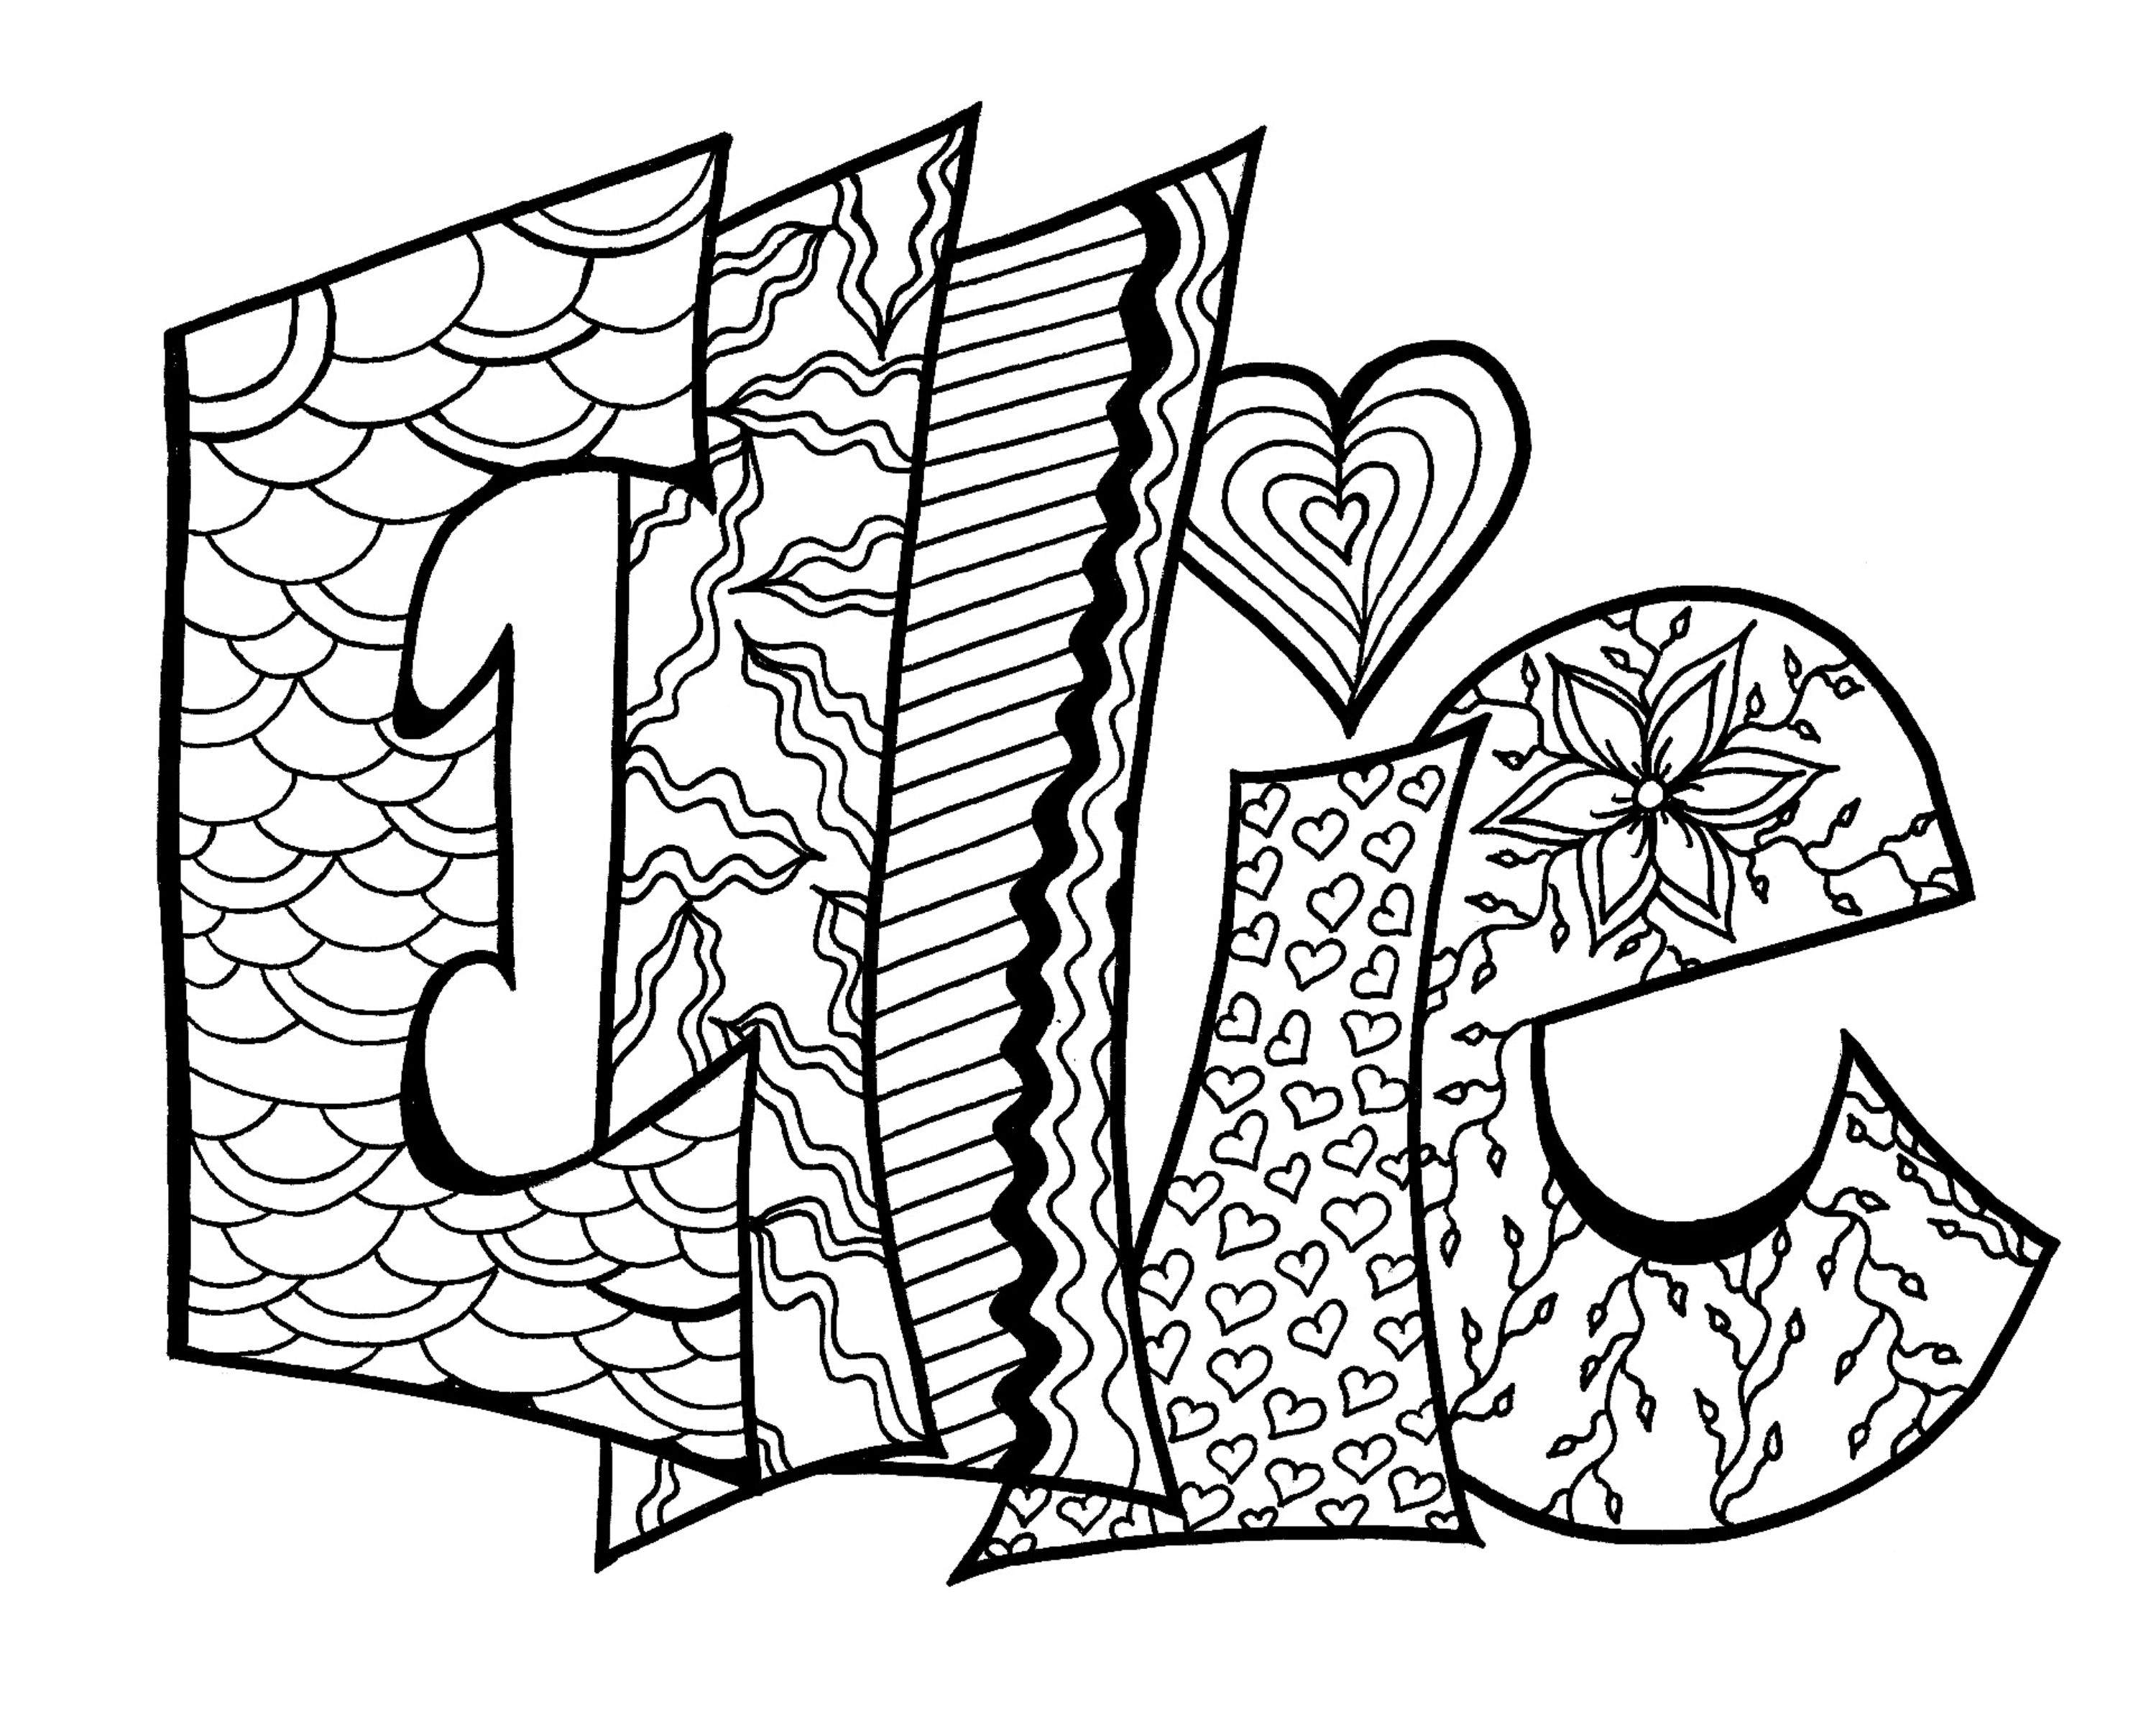 free personalized wedding coloring pages digital custom coloring page purchase this item and etsy pages wedding personalized coloring free